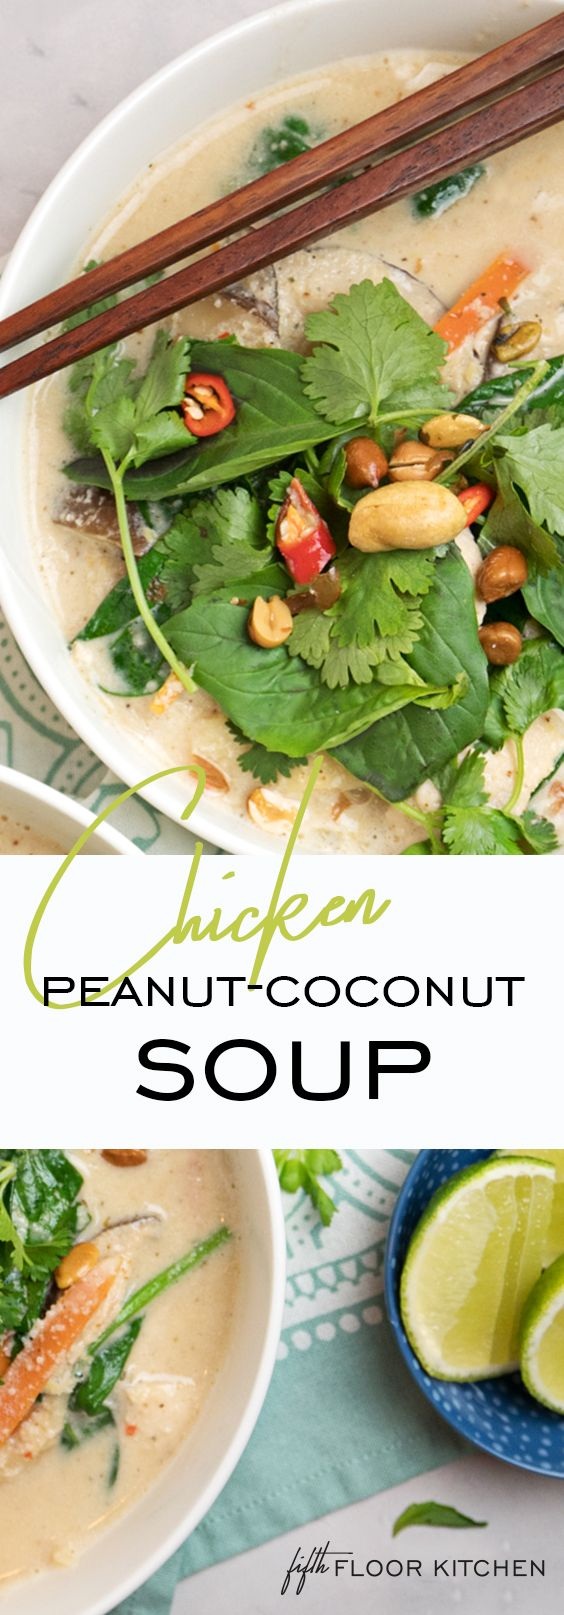 Looking for a incredible recipe for the weekend!? I've got this fantastic peanut and coconut soup with chicken, vermicelli and veggies… but careful, it's hot ️️️ #fifthfloorkitchen #spicy #coconut #peanut #soup